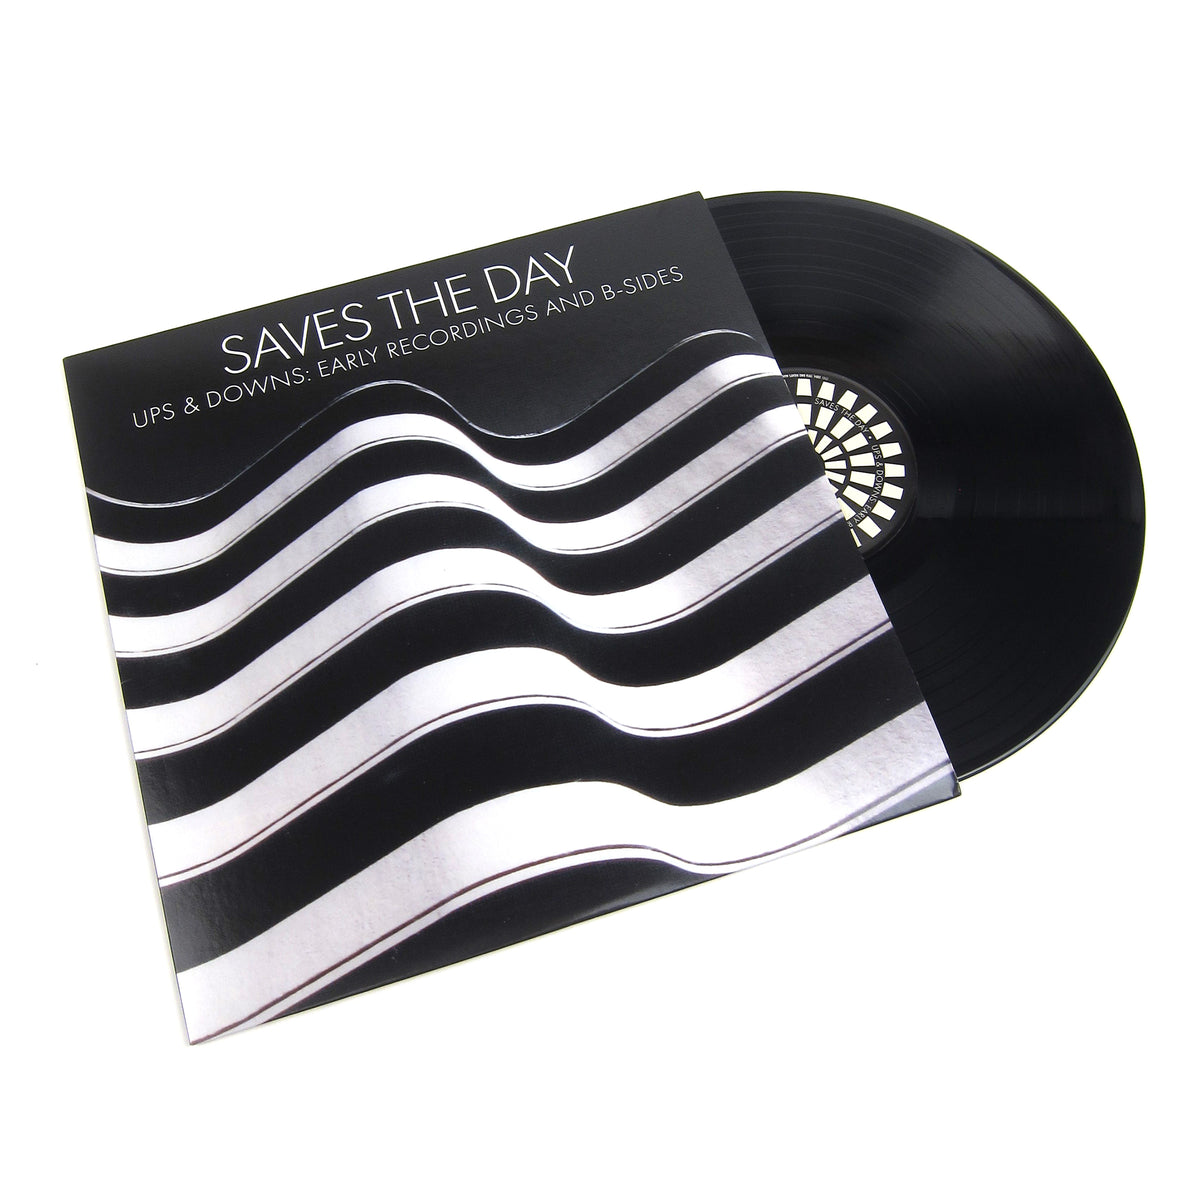 Saves The Day: Ups & Downs - Early Recordings And B-Sides (180g) Vinyl LP